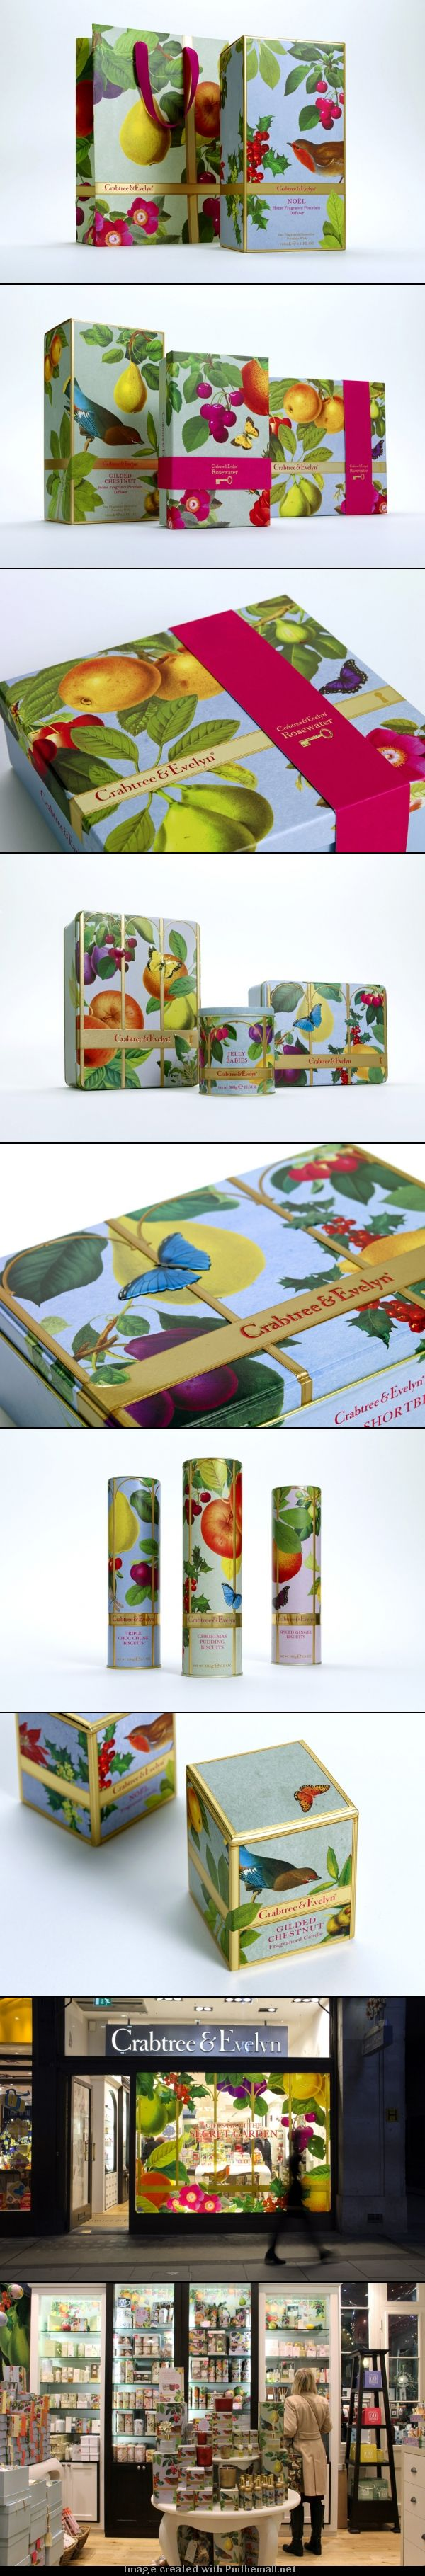 Awesome #packaging #branding at #Christmas curated by Packaging Diva PD created via http://www.nbstudio.co.uk/our-work/crabtree-evelyn-christmas